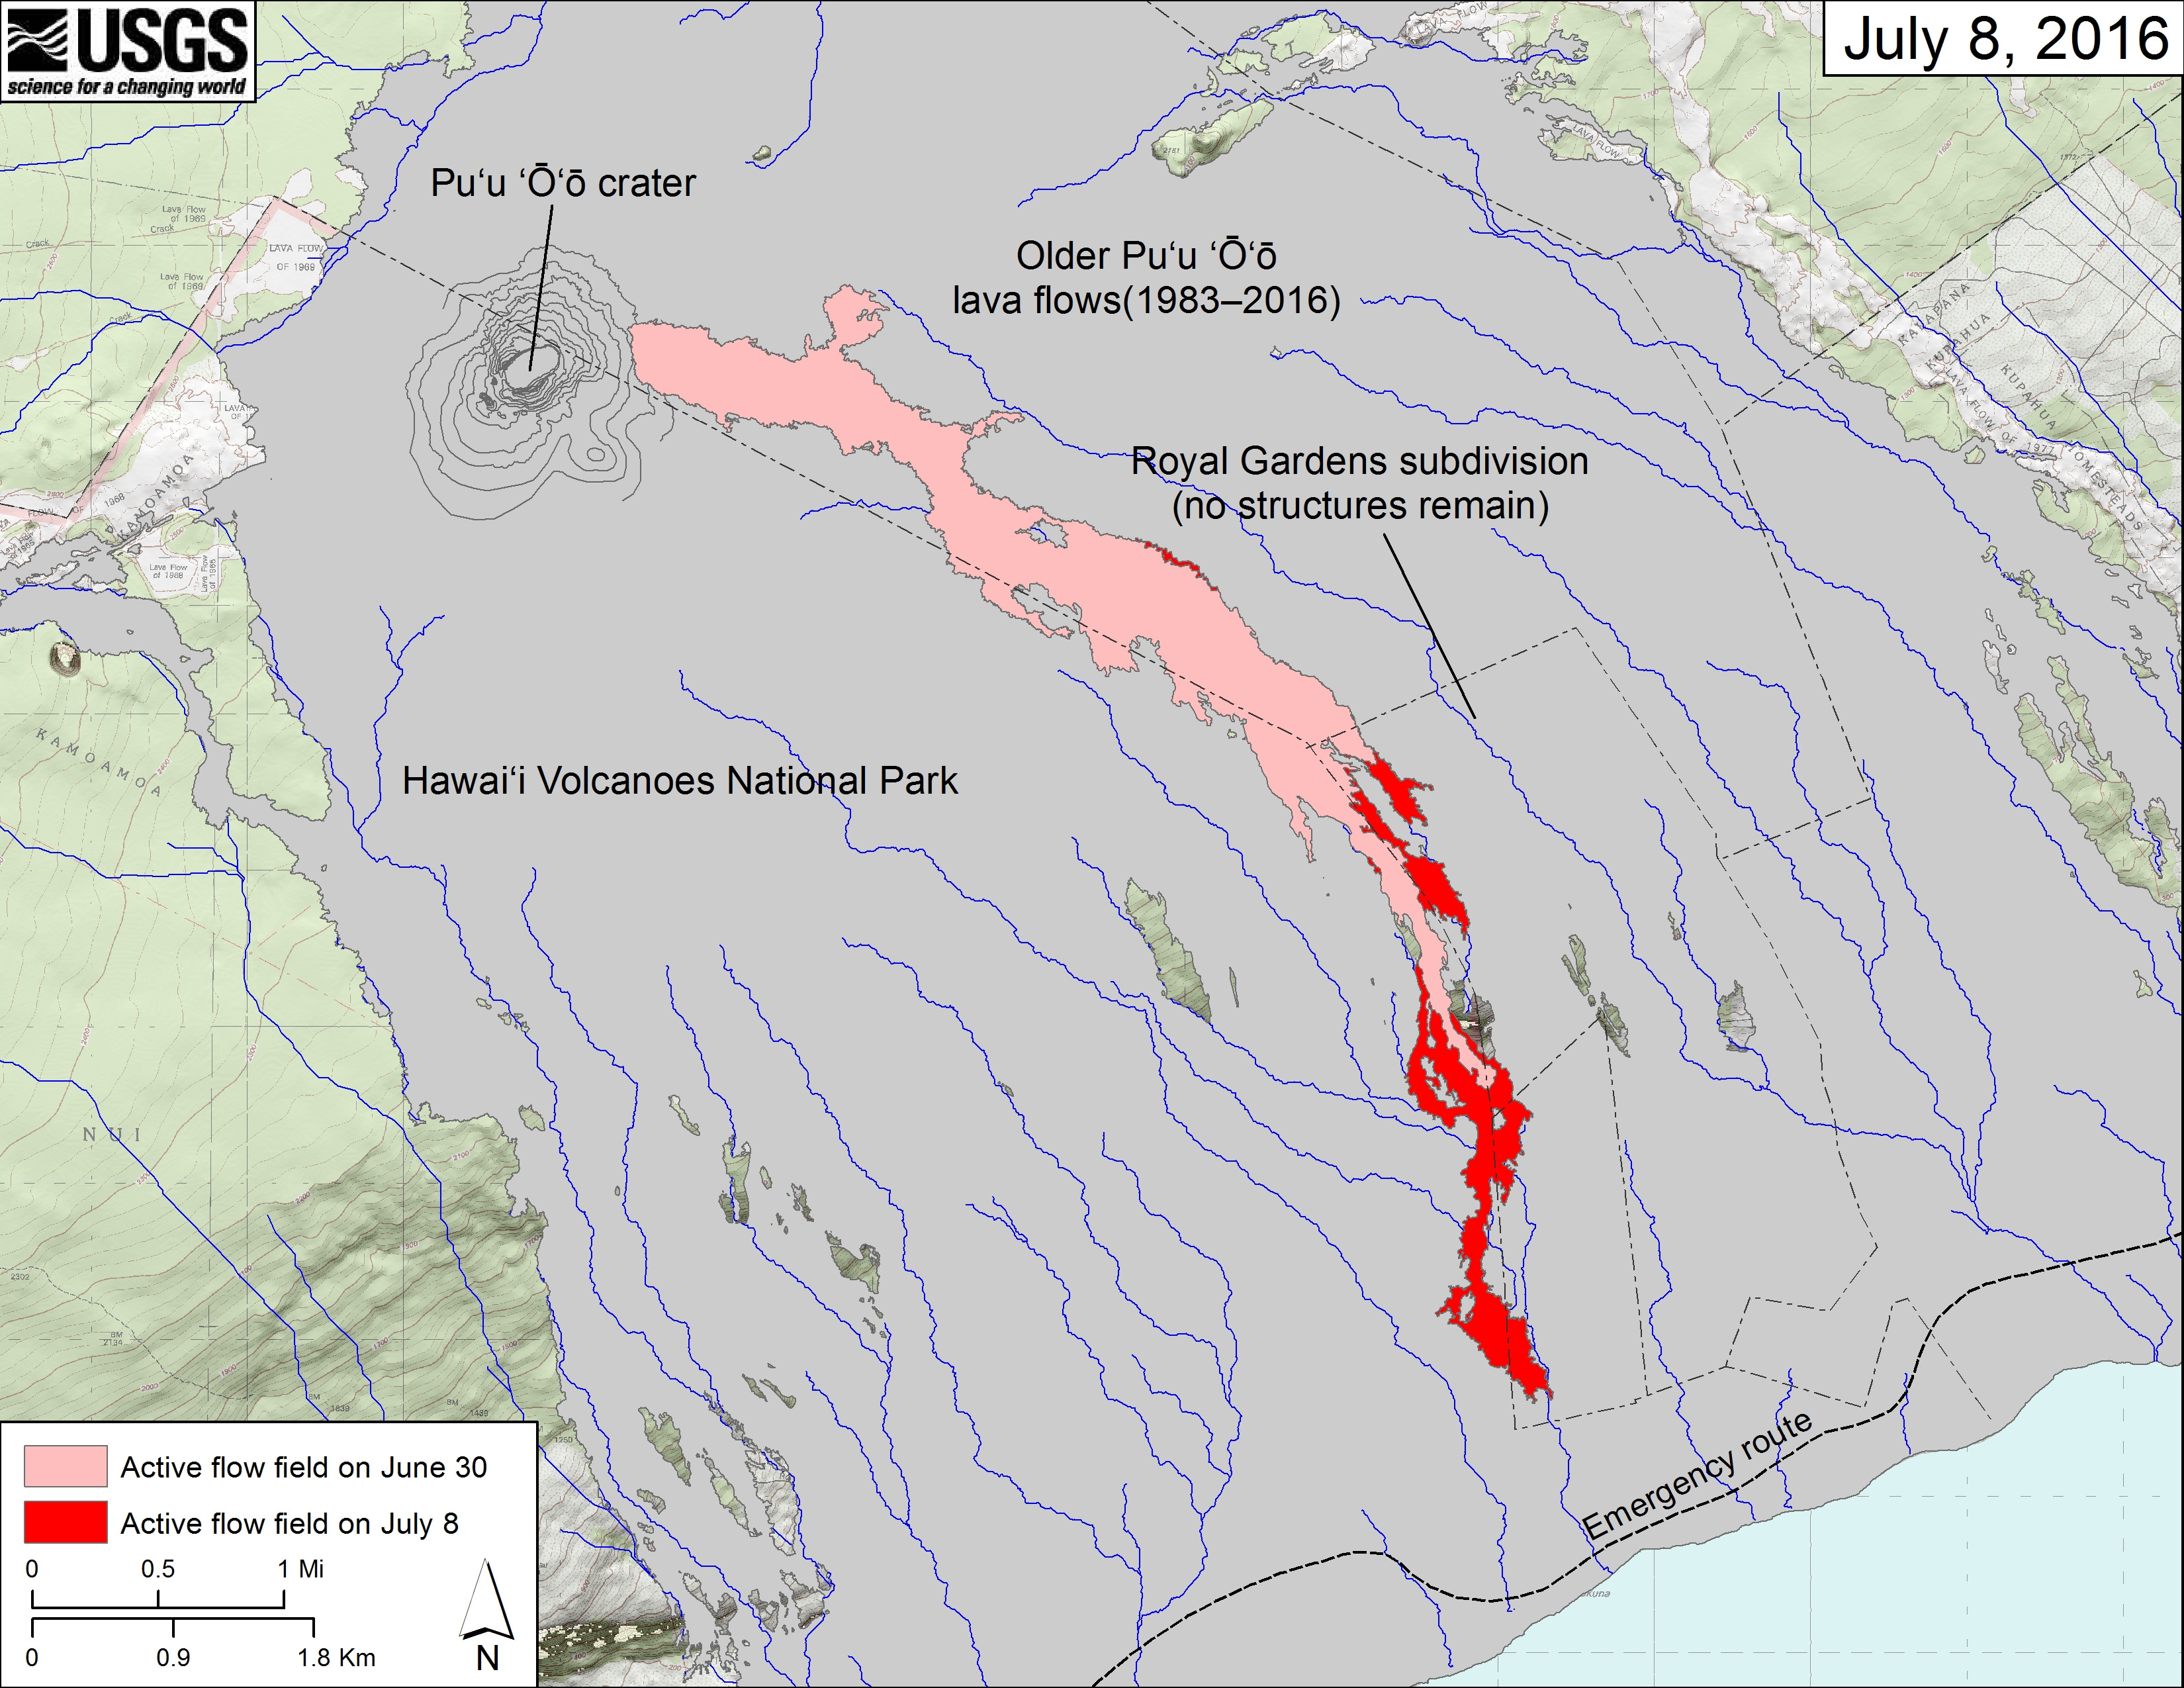 (USGS map) The area of the active flow field as of June 30 is shown in pink, while widening and advancement of the active flow as mapped on July 8 is shown in red. Older Puʻu ʻŌʻō lava flows (1983–2016) are shown in gray.